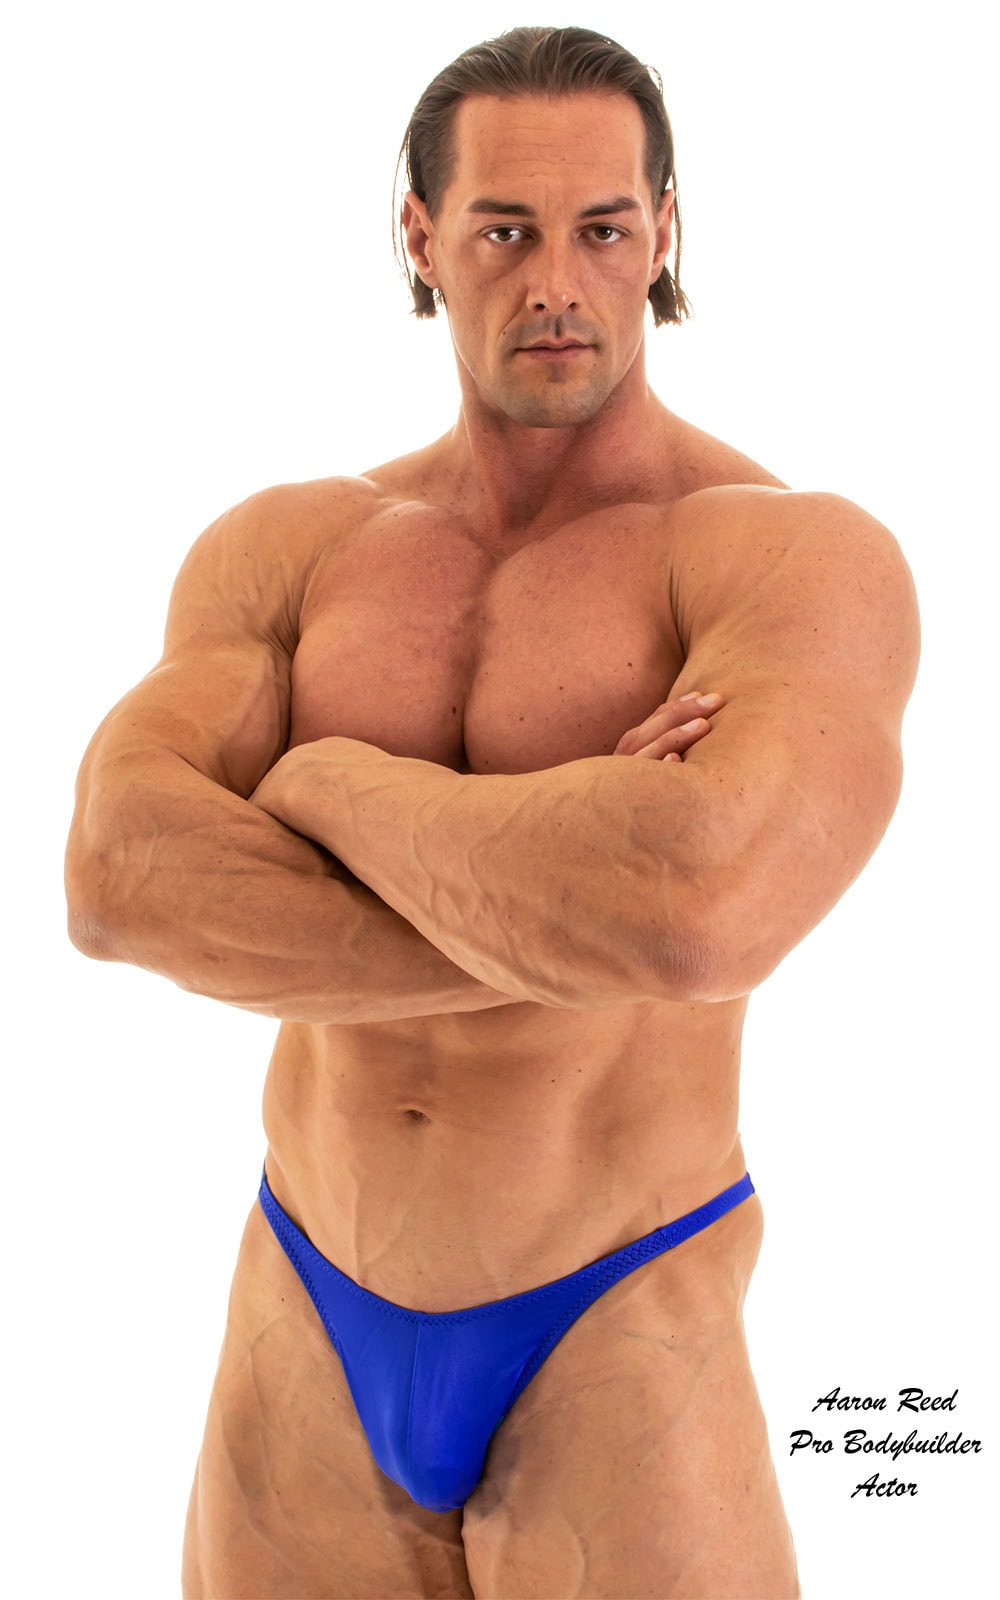 Fitted Pouch - Puckered Back - Posing Suit in Wet Look Royal Blue 1